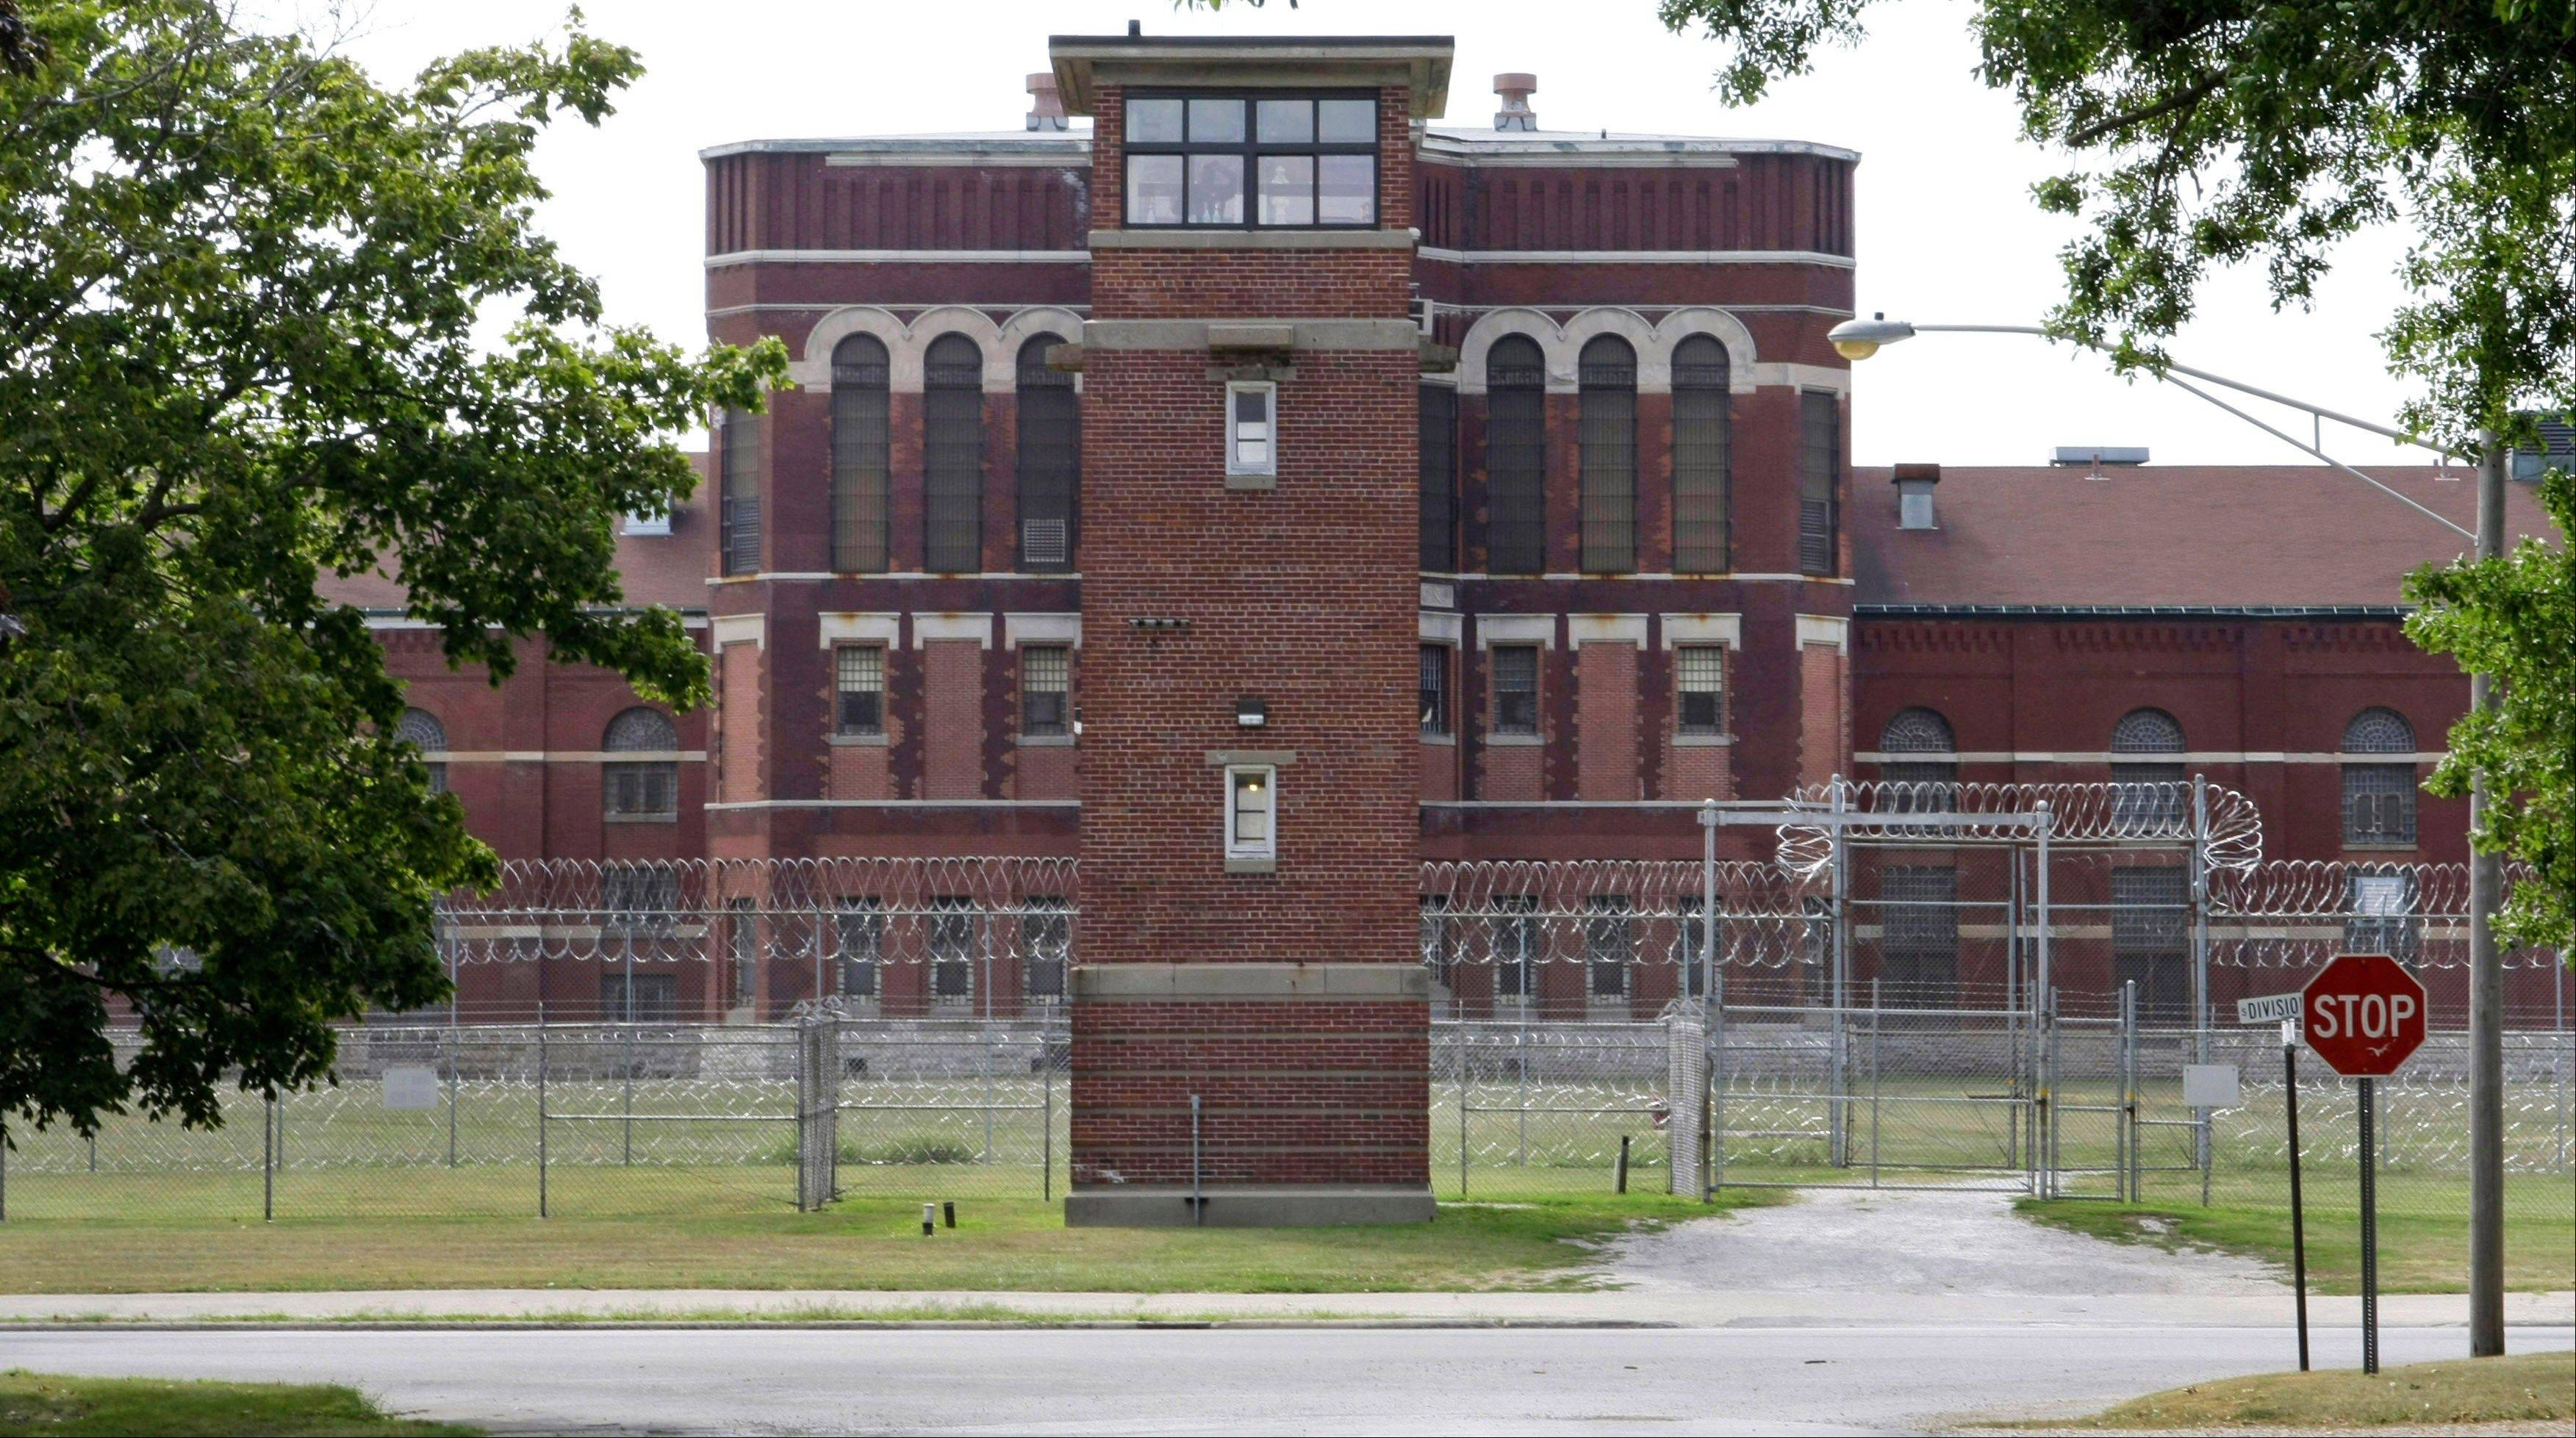 Twenty-five criminal justice students visited Pontiac Correctional Center on Oct. 19.